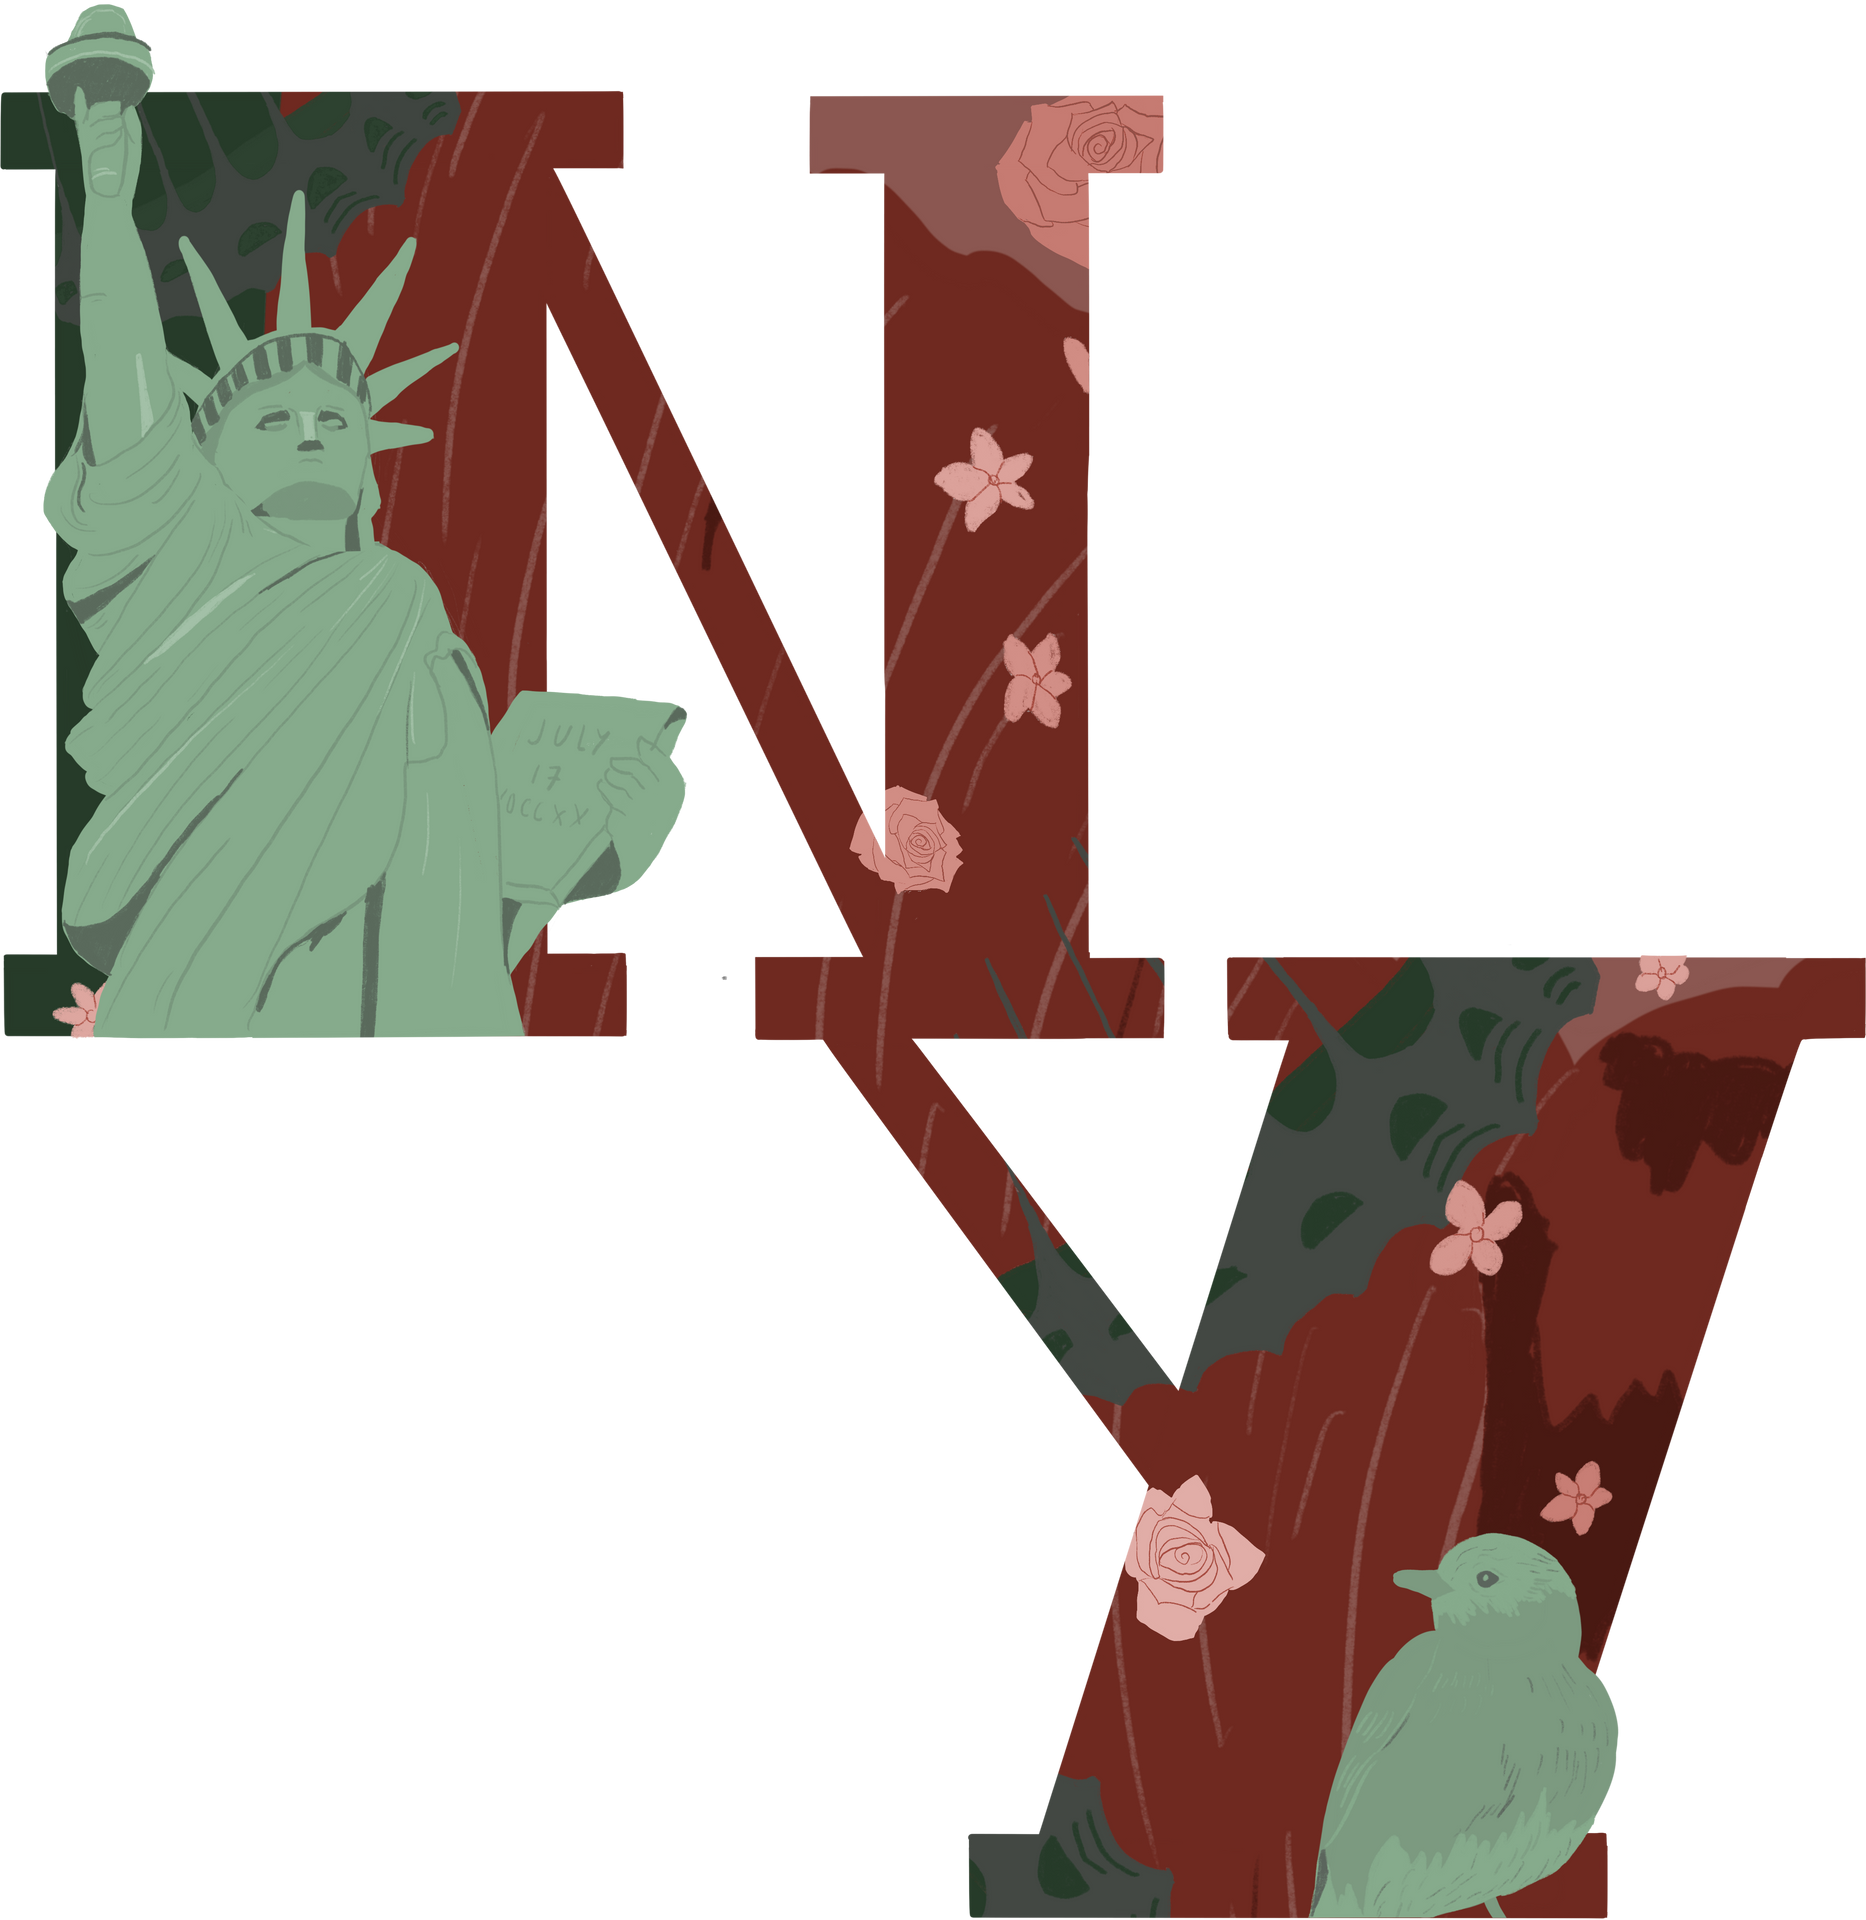 New_York.png